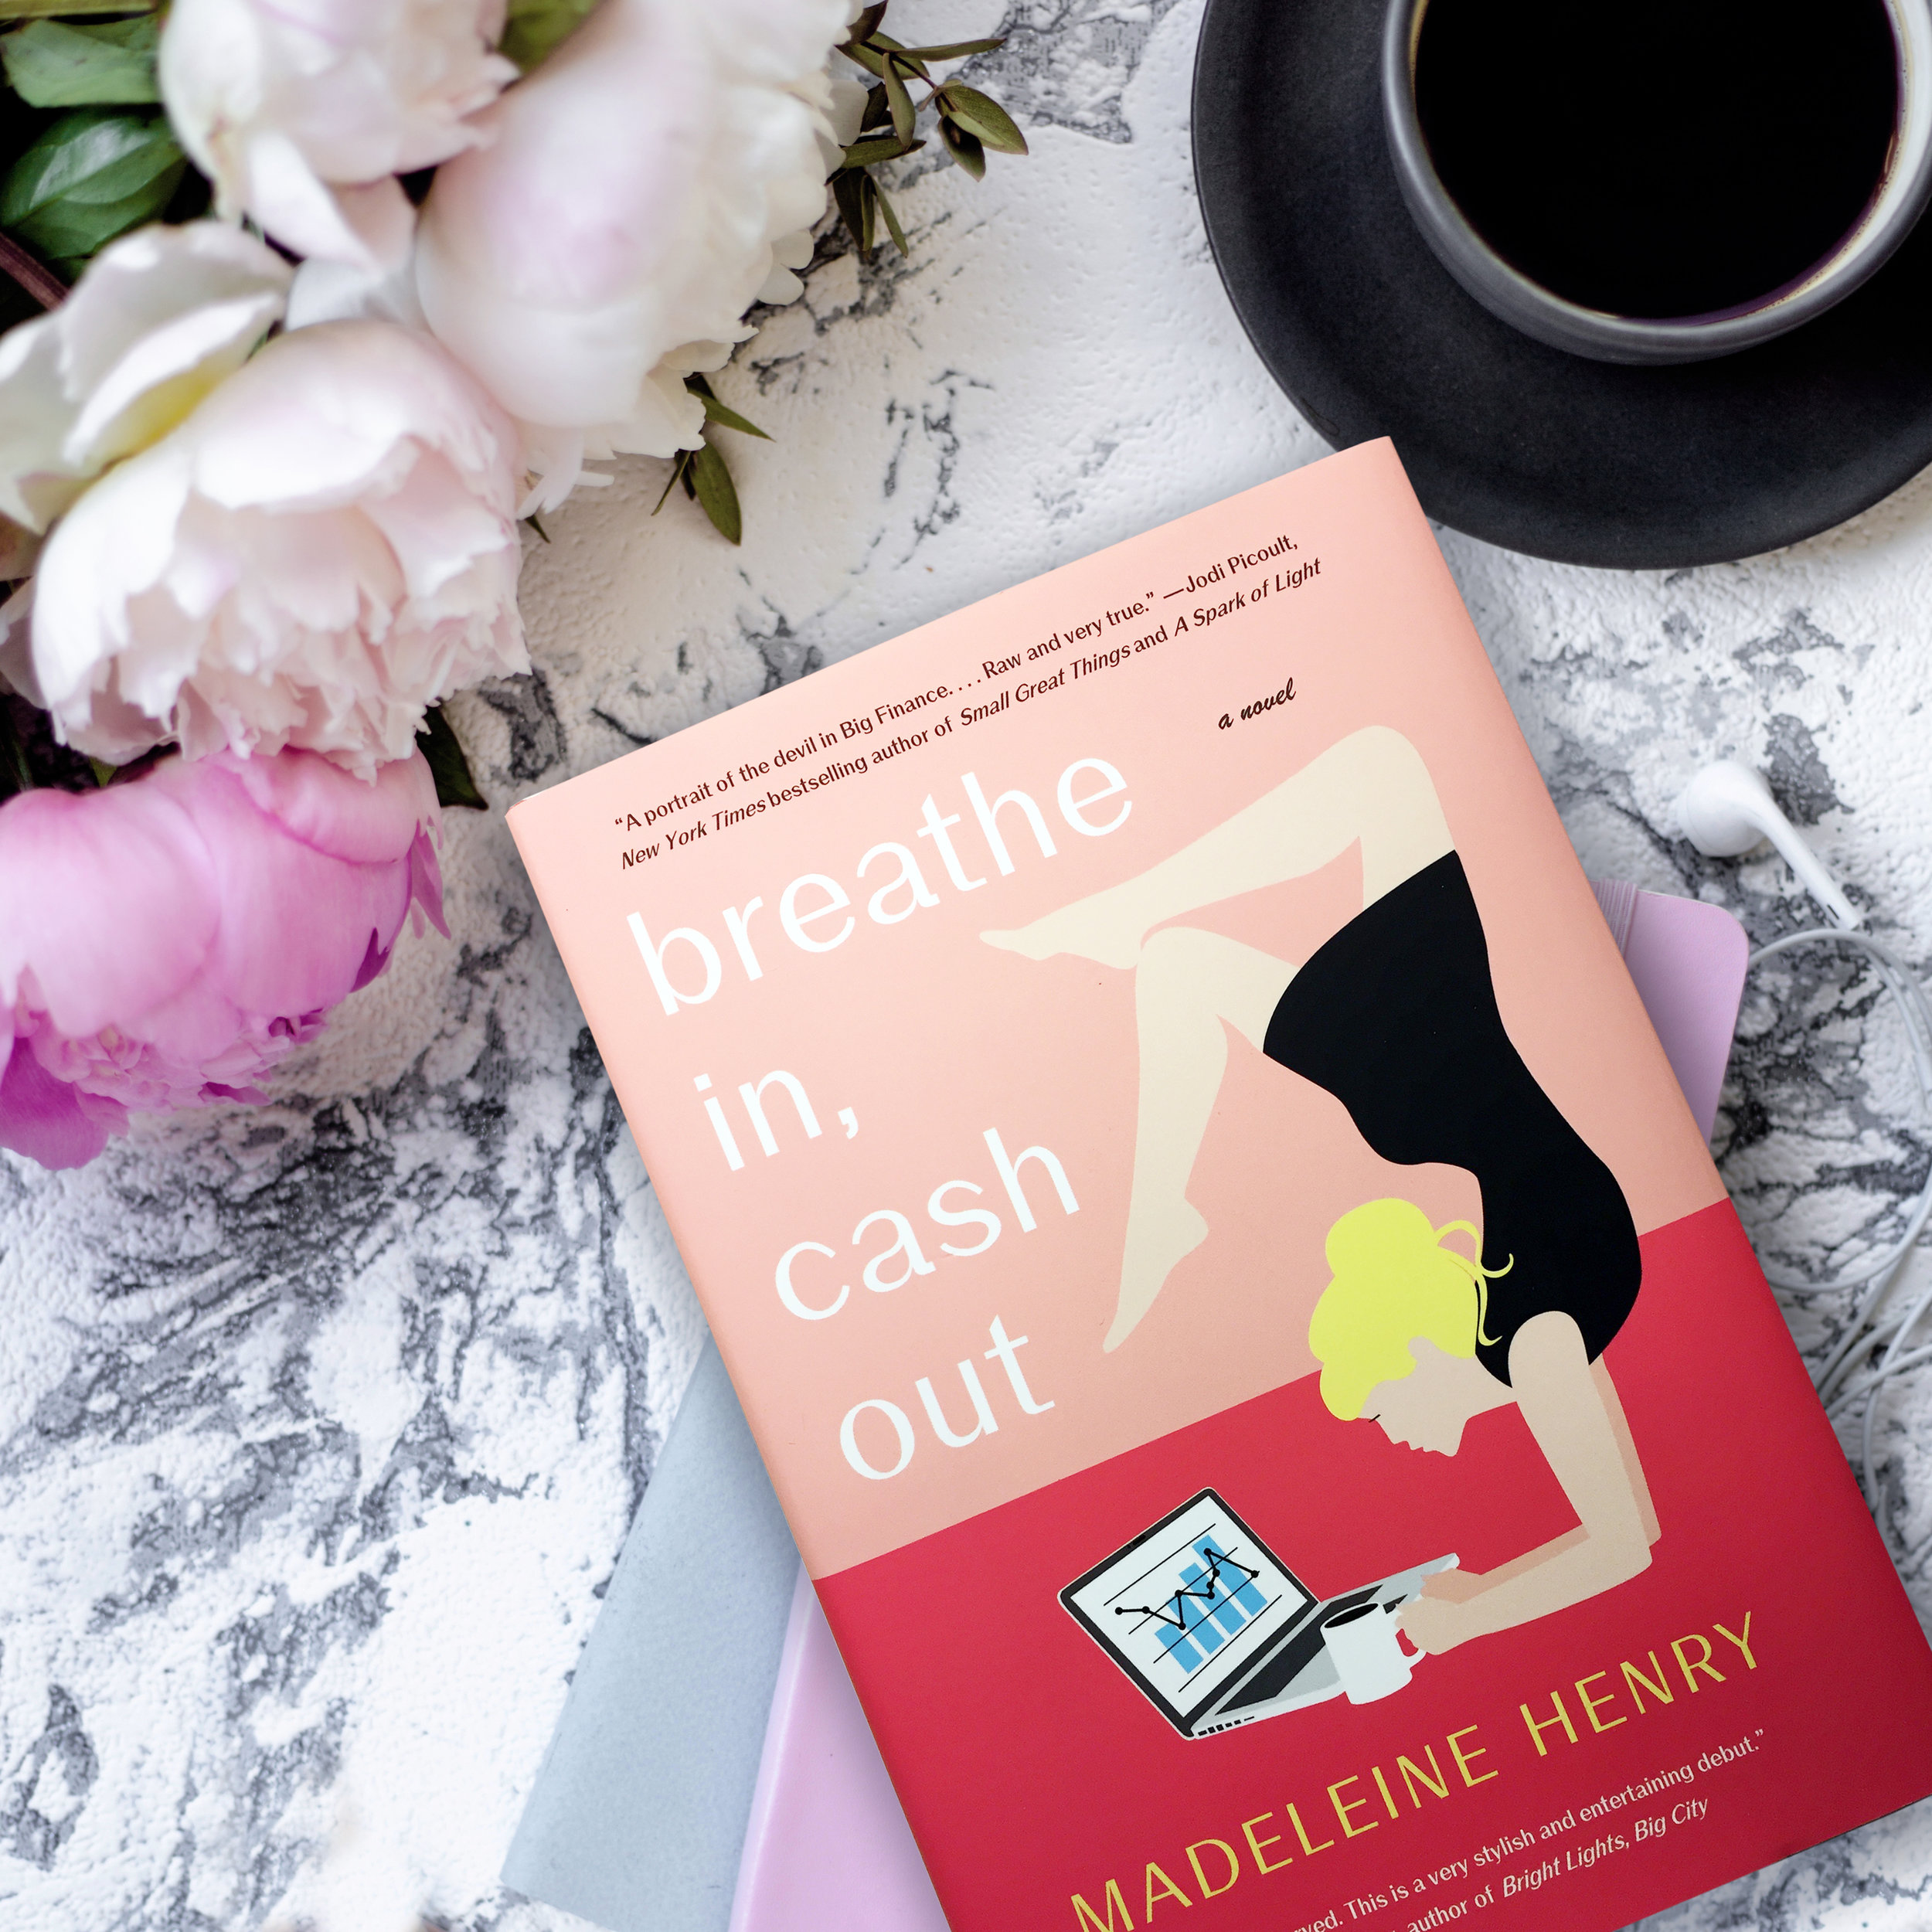 * Book Review for BREATHE IN, CASH OUT by Madeleine Henry *